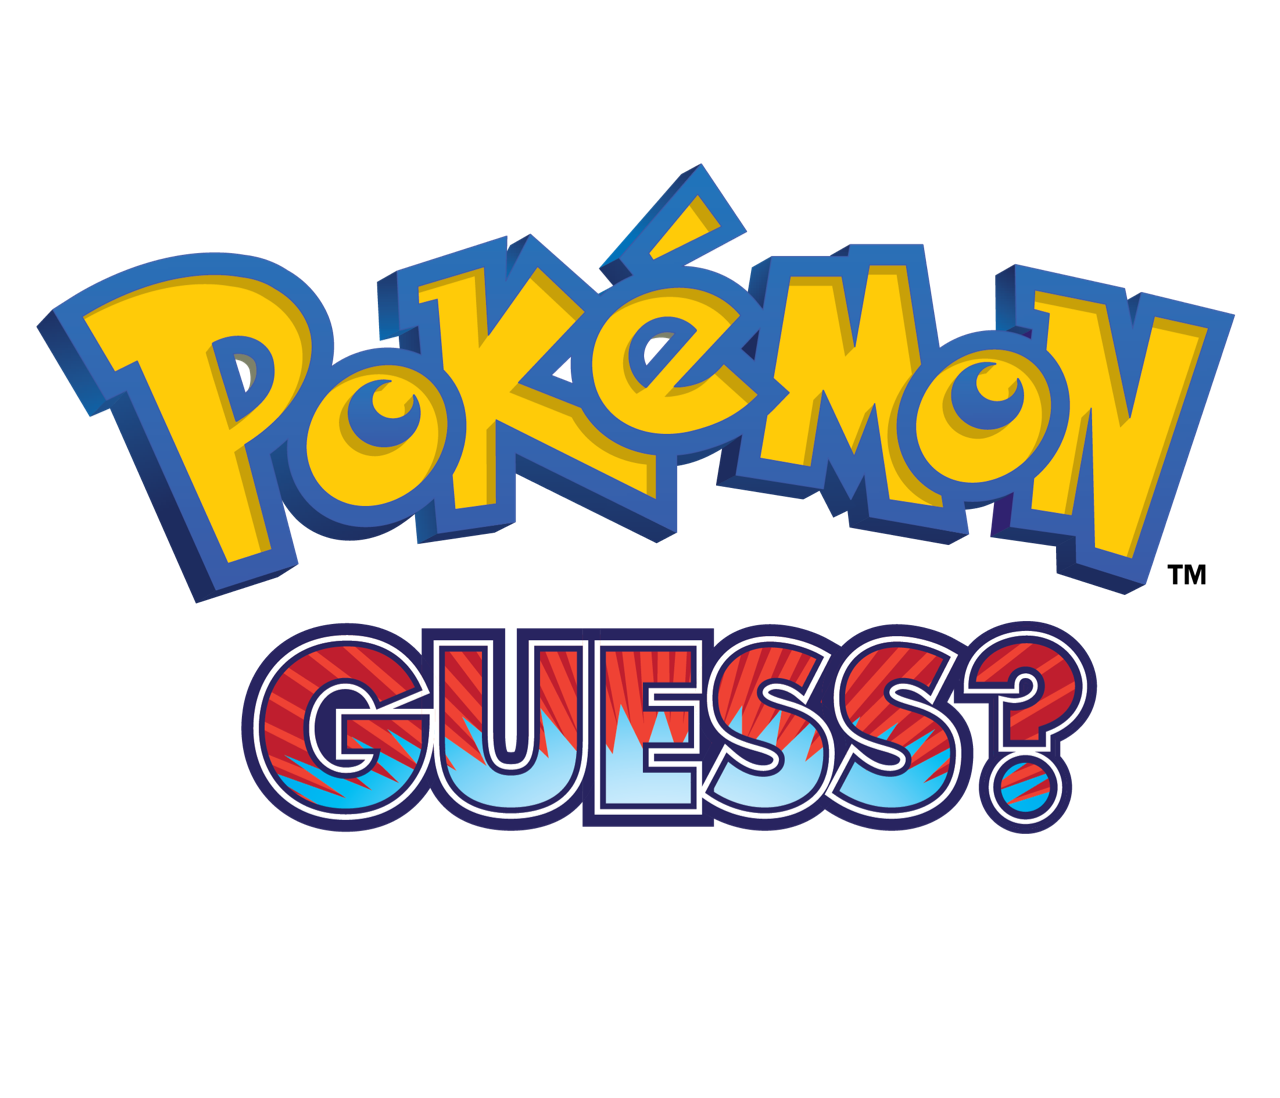 Pokémon Trainer Guess sweepstakes